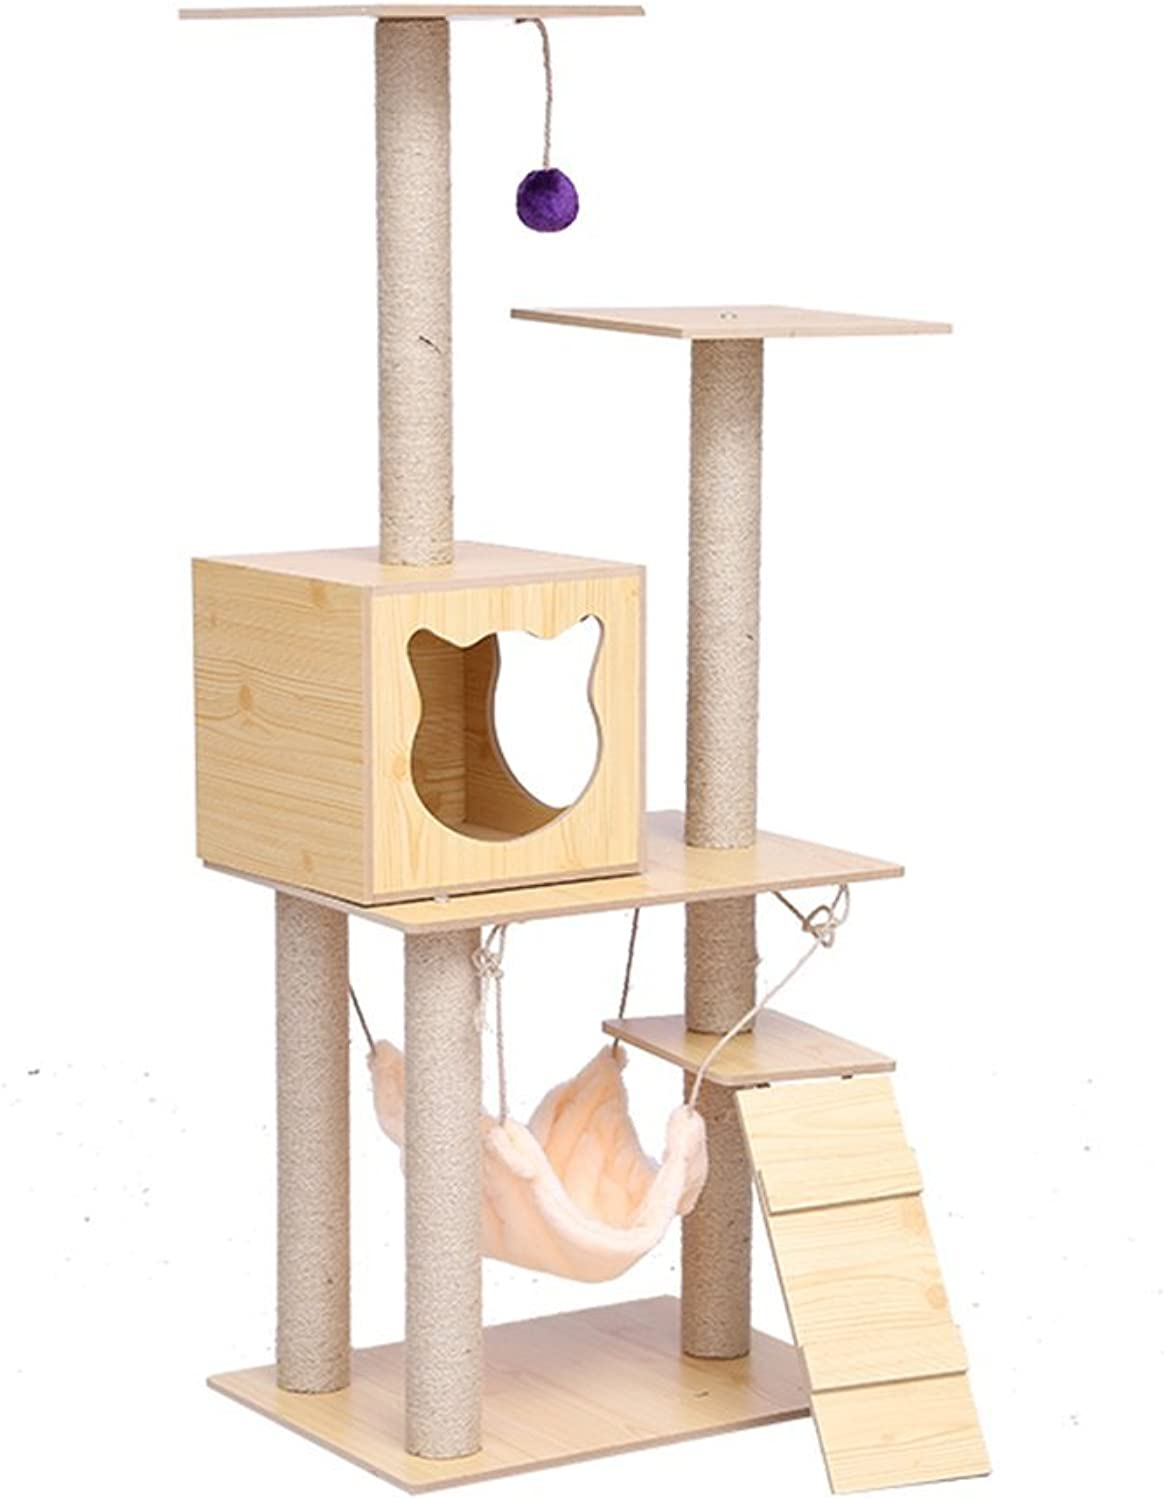 L&XY Cat Tree Apartment Furniture Caterpillar Activity Tower MultiPlatform Catch Cat Post Tree Steady And Secure Environment Play Scratch Pet Toy 3853135Cm